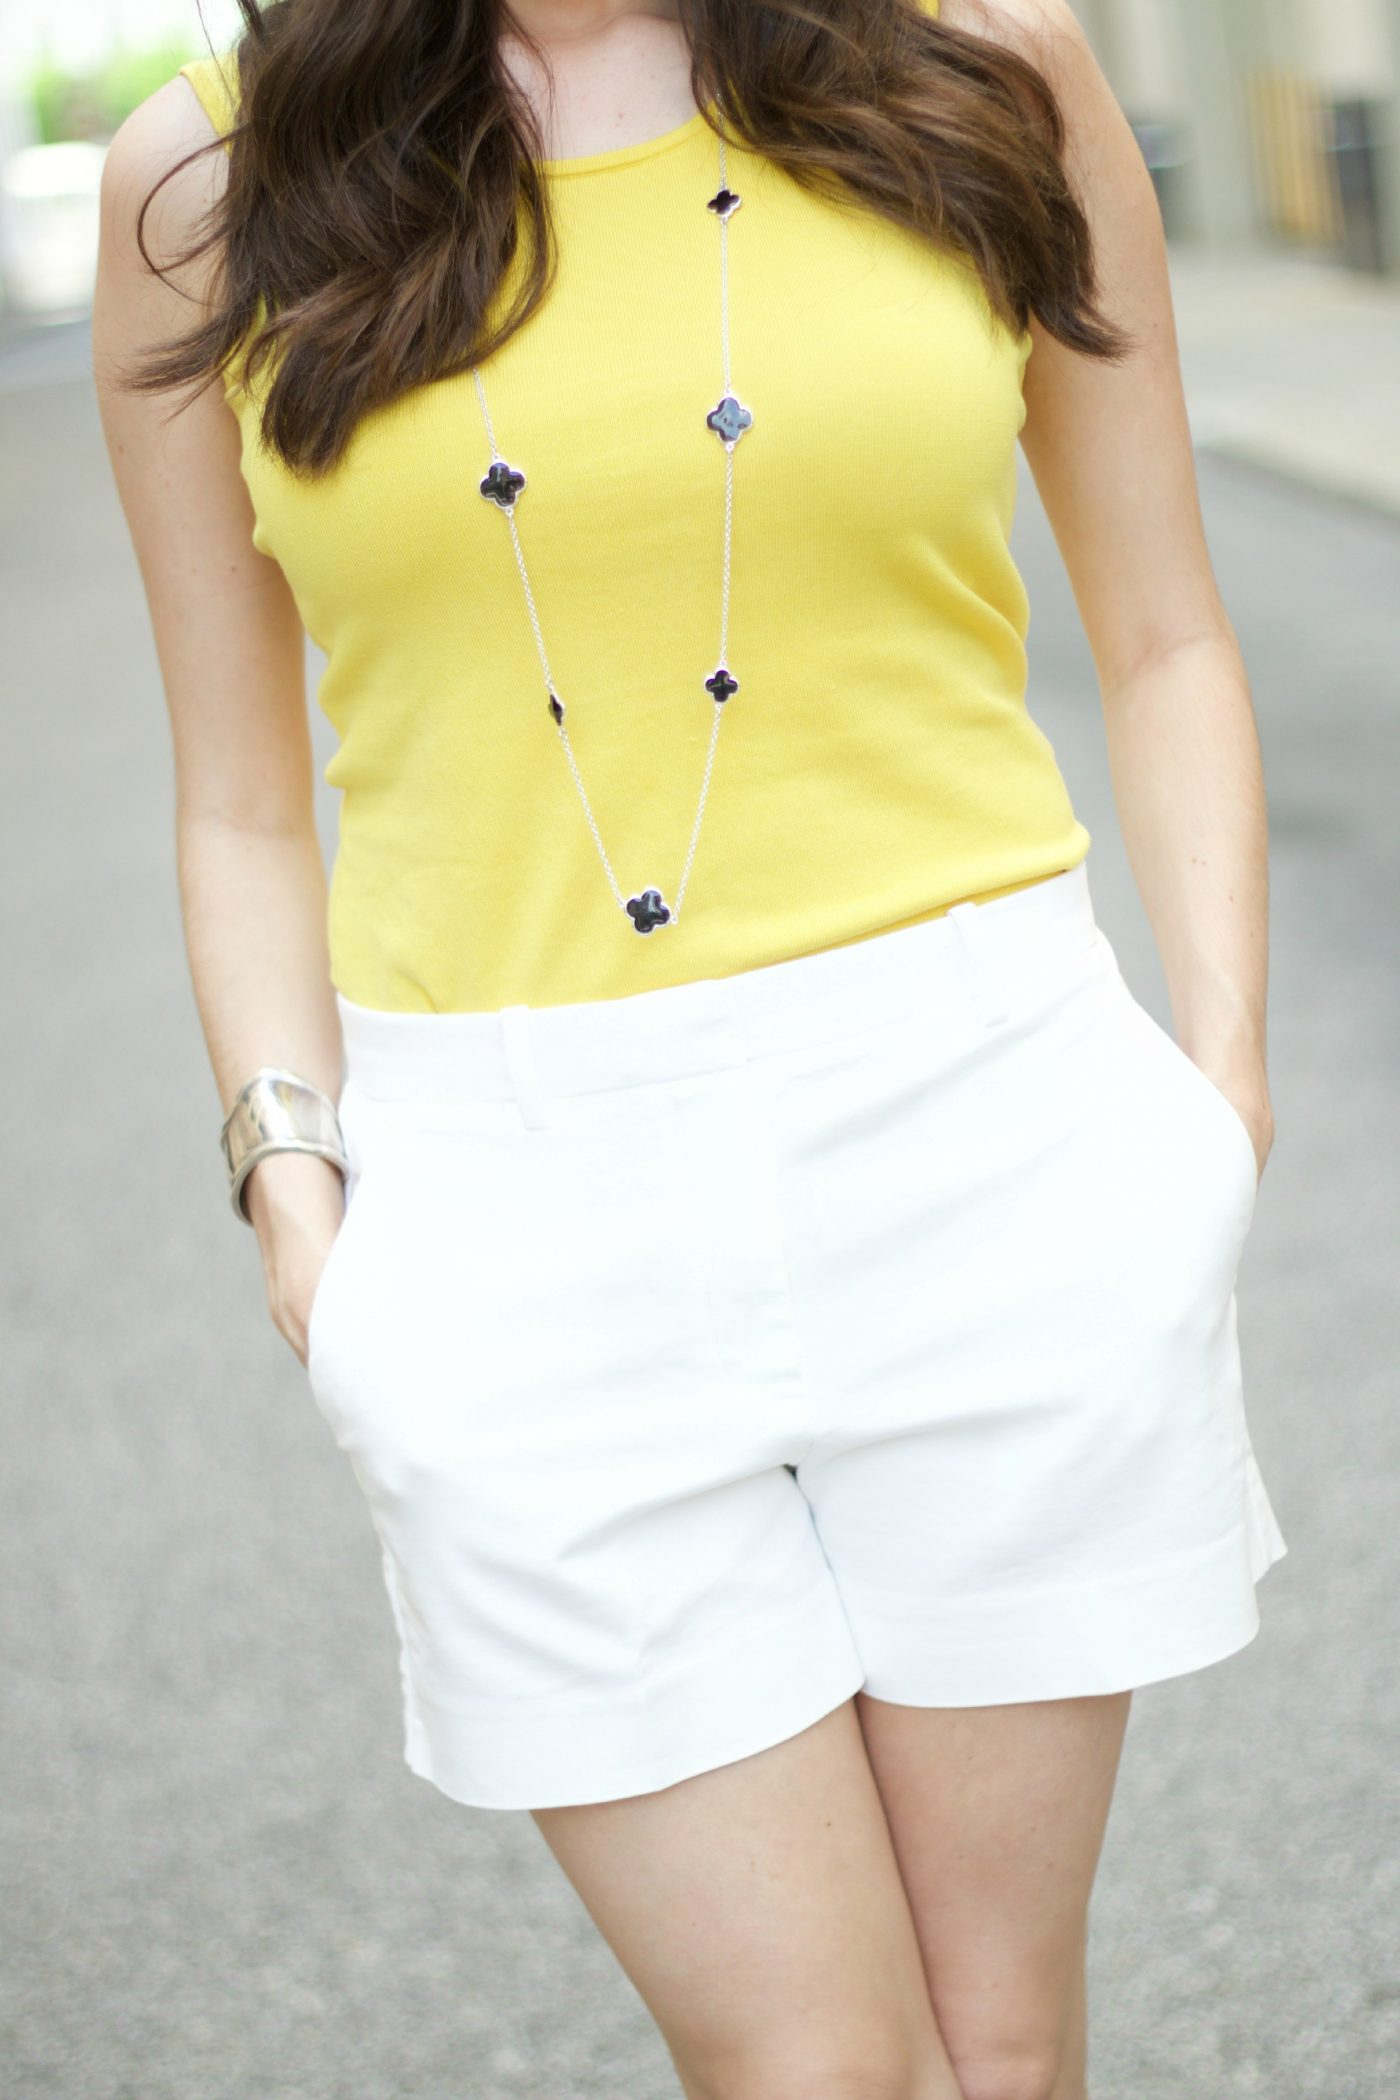 Gap Tailored Shorts with Yellow Top